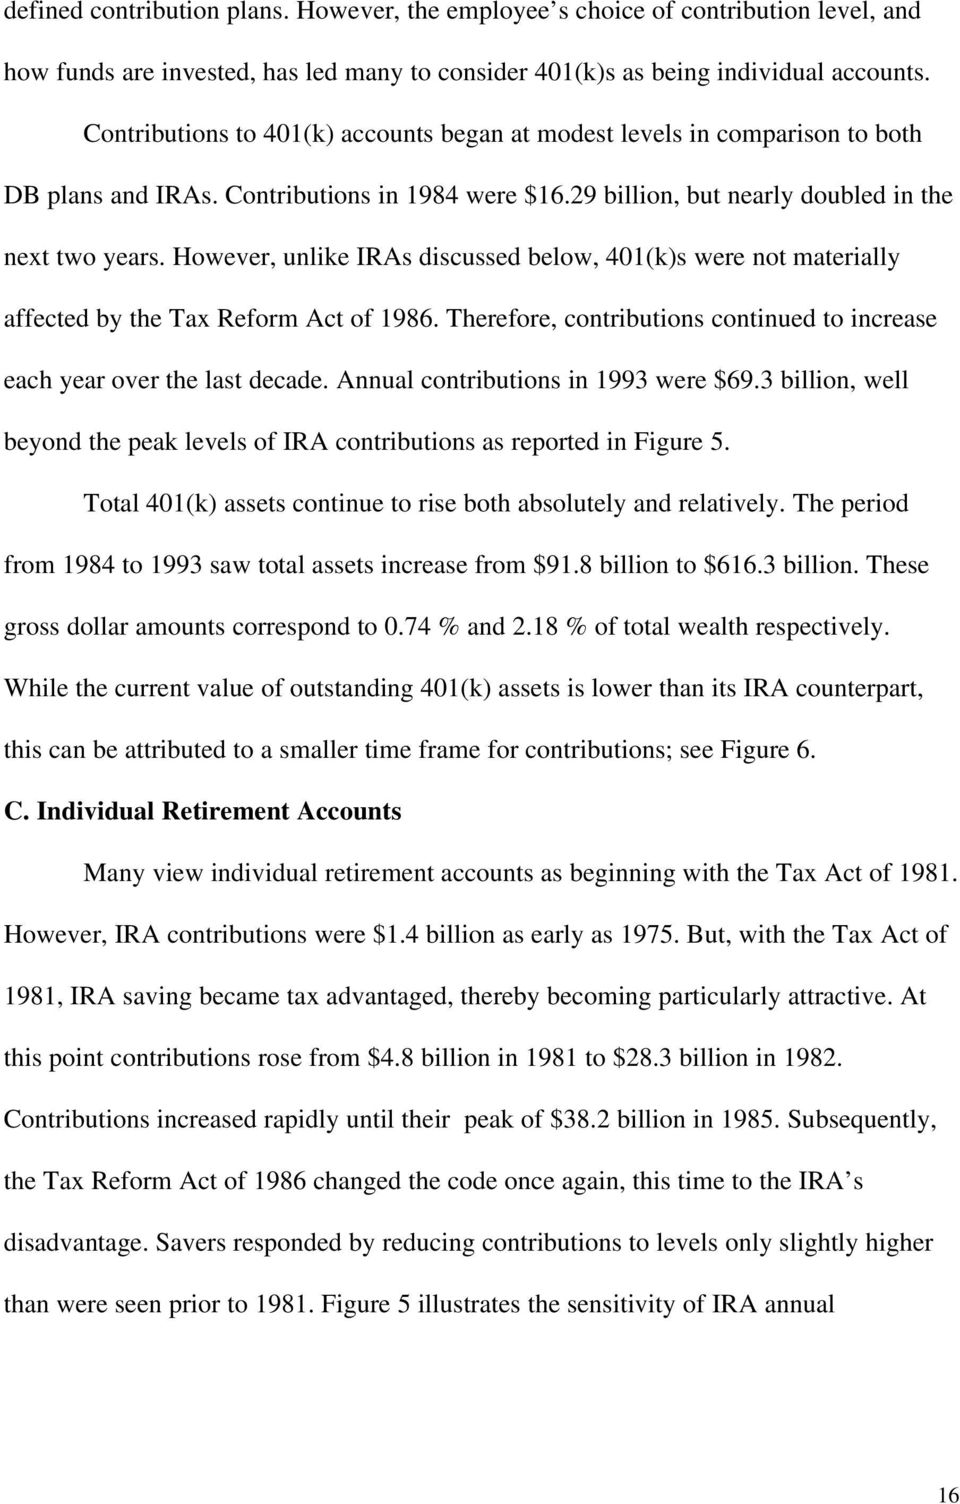 However, unlike IRAs discussed below, 401(k)s were not materially affected by the Tax Reform Act of 1986. Therefore, contributions continued to increase each year over the last decade.